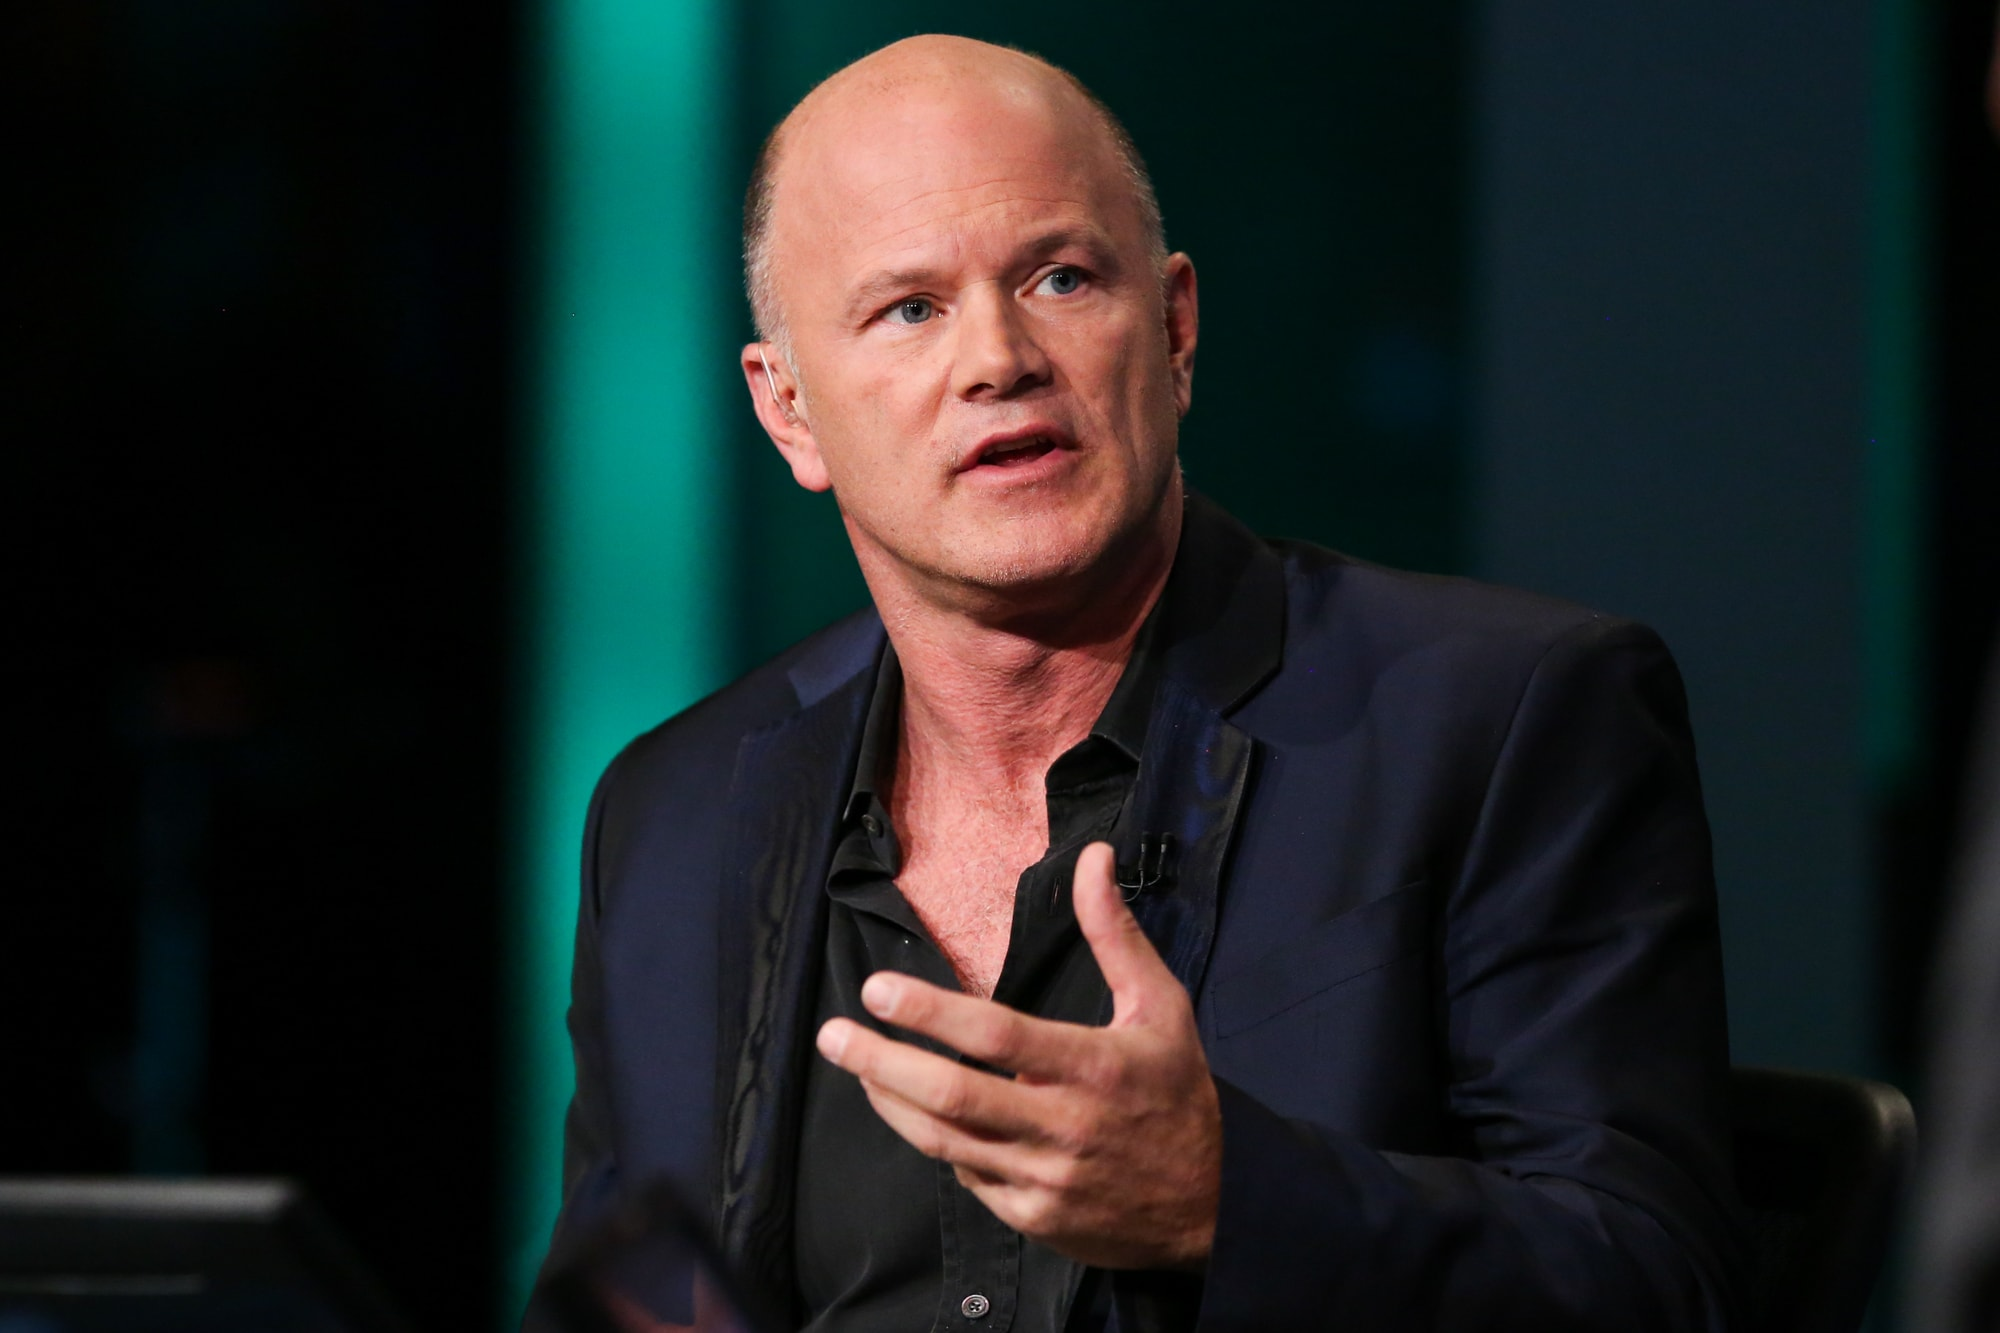 Altcoins like XRP and Ethereum are Still in the 'Proving' Phase - Mike Novogratz